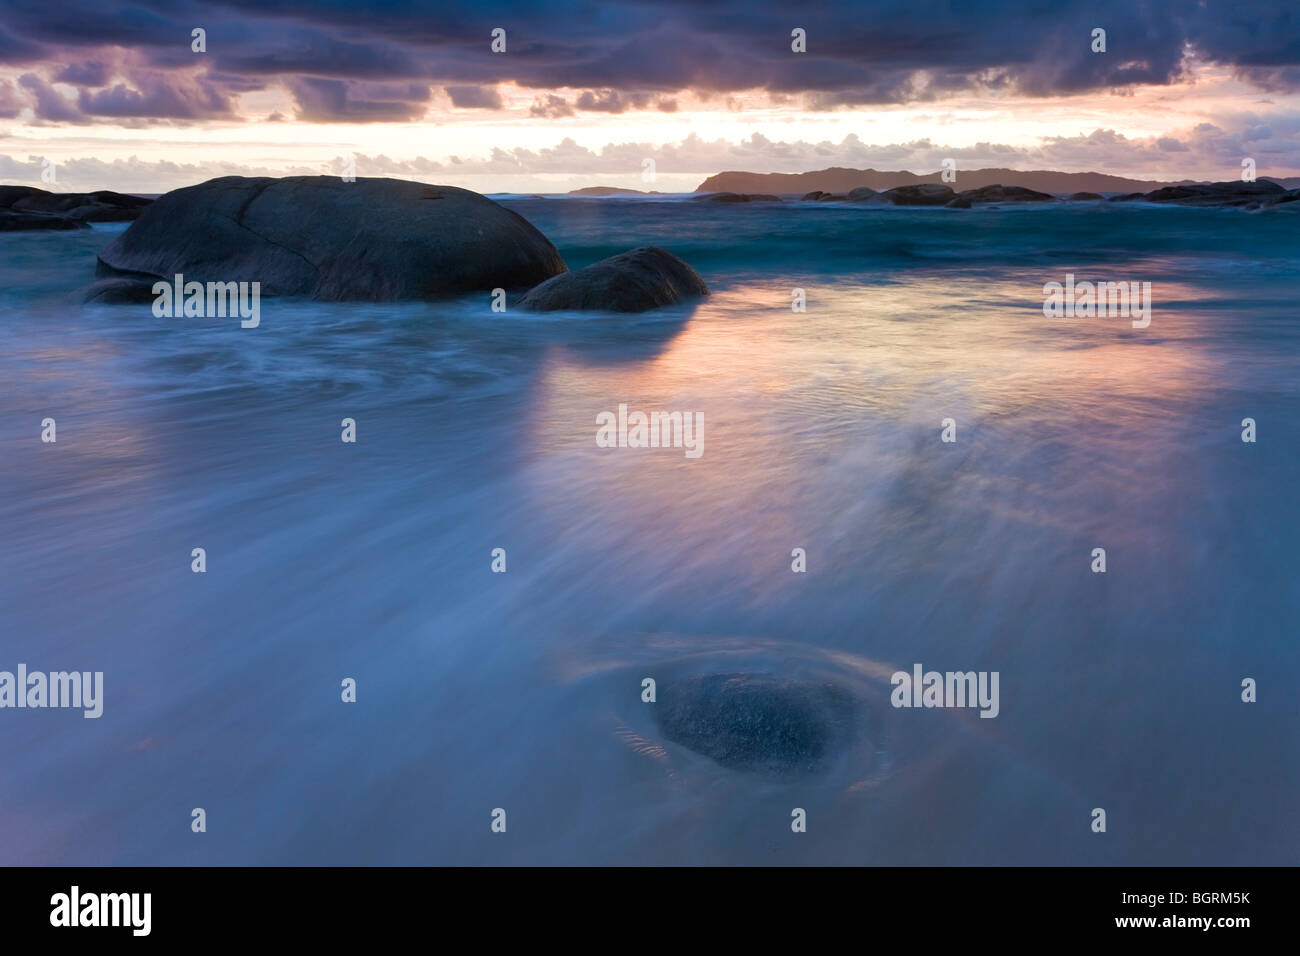 William Beach, William Bay National Park, nr Denmark, Western Australia - Stock Image